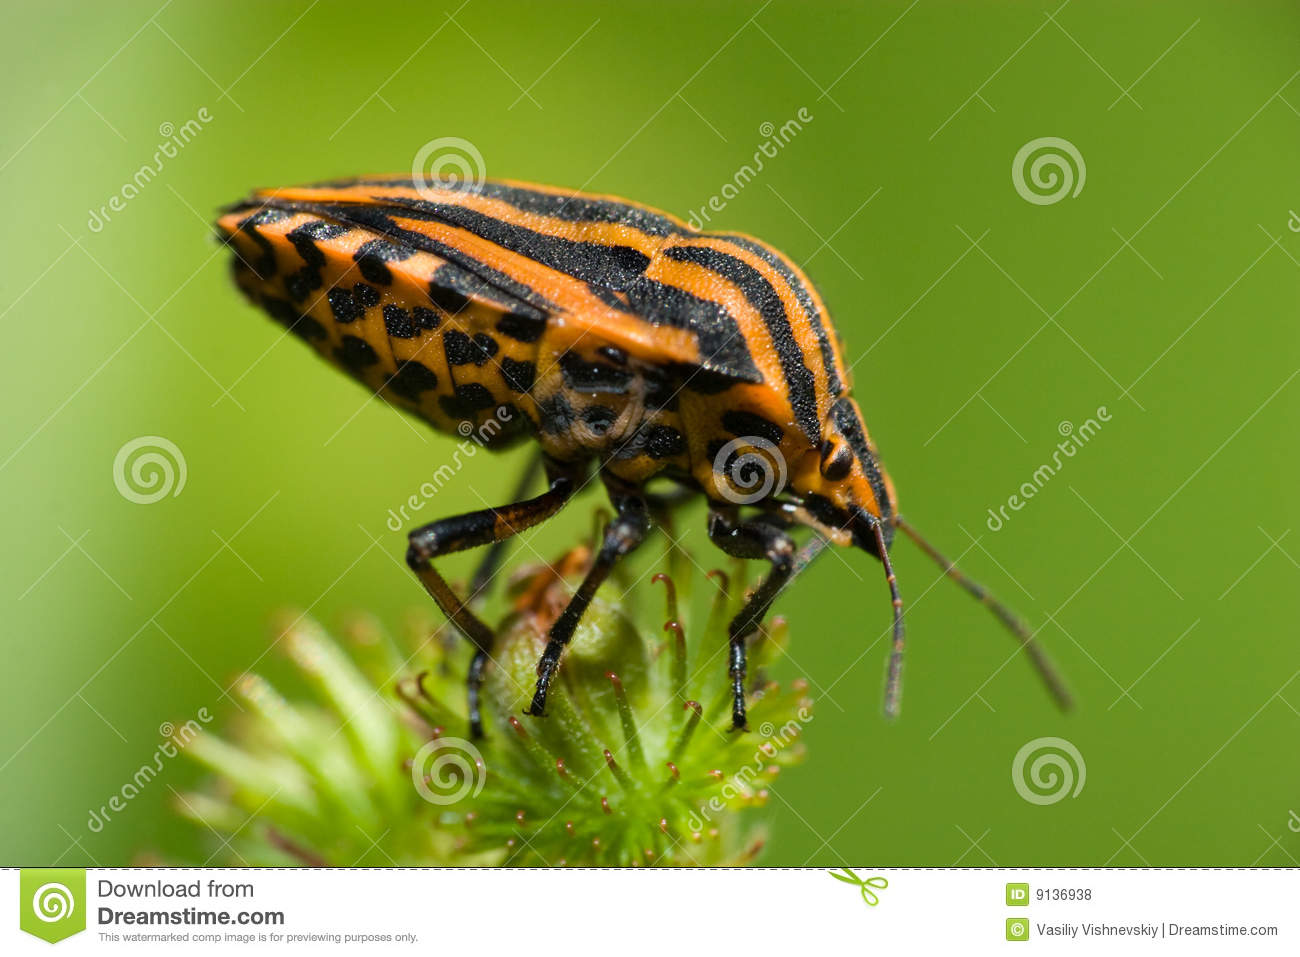 Graphosoma Lineatum, Red & Black Striped Stink Bug Royalty Free.